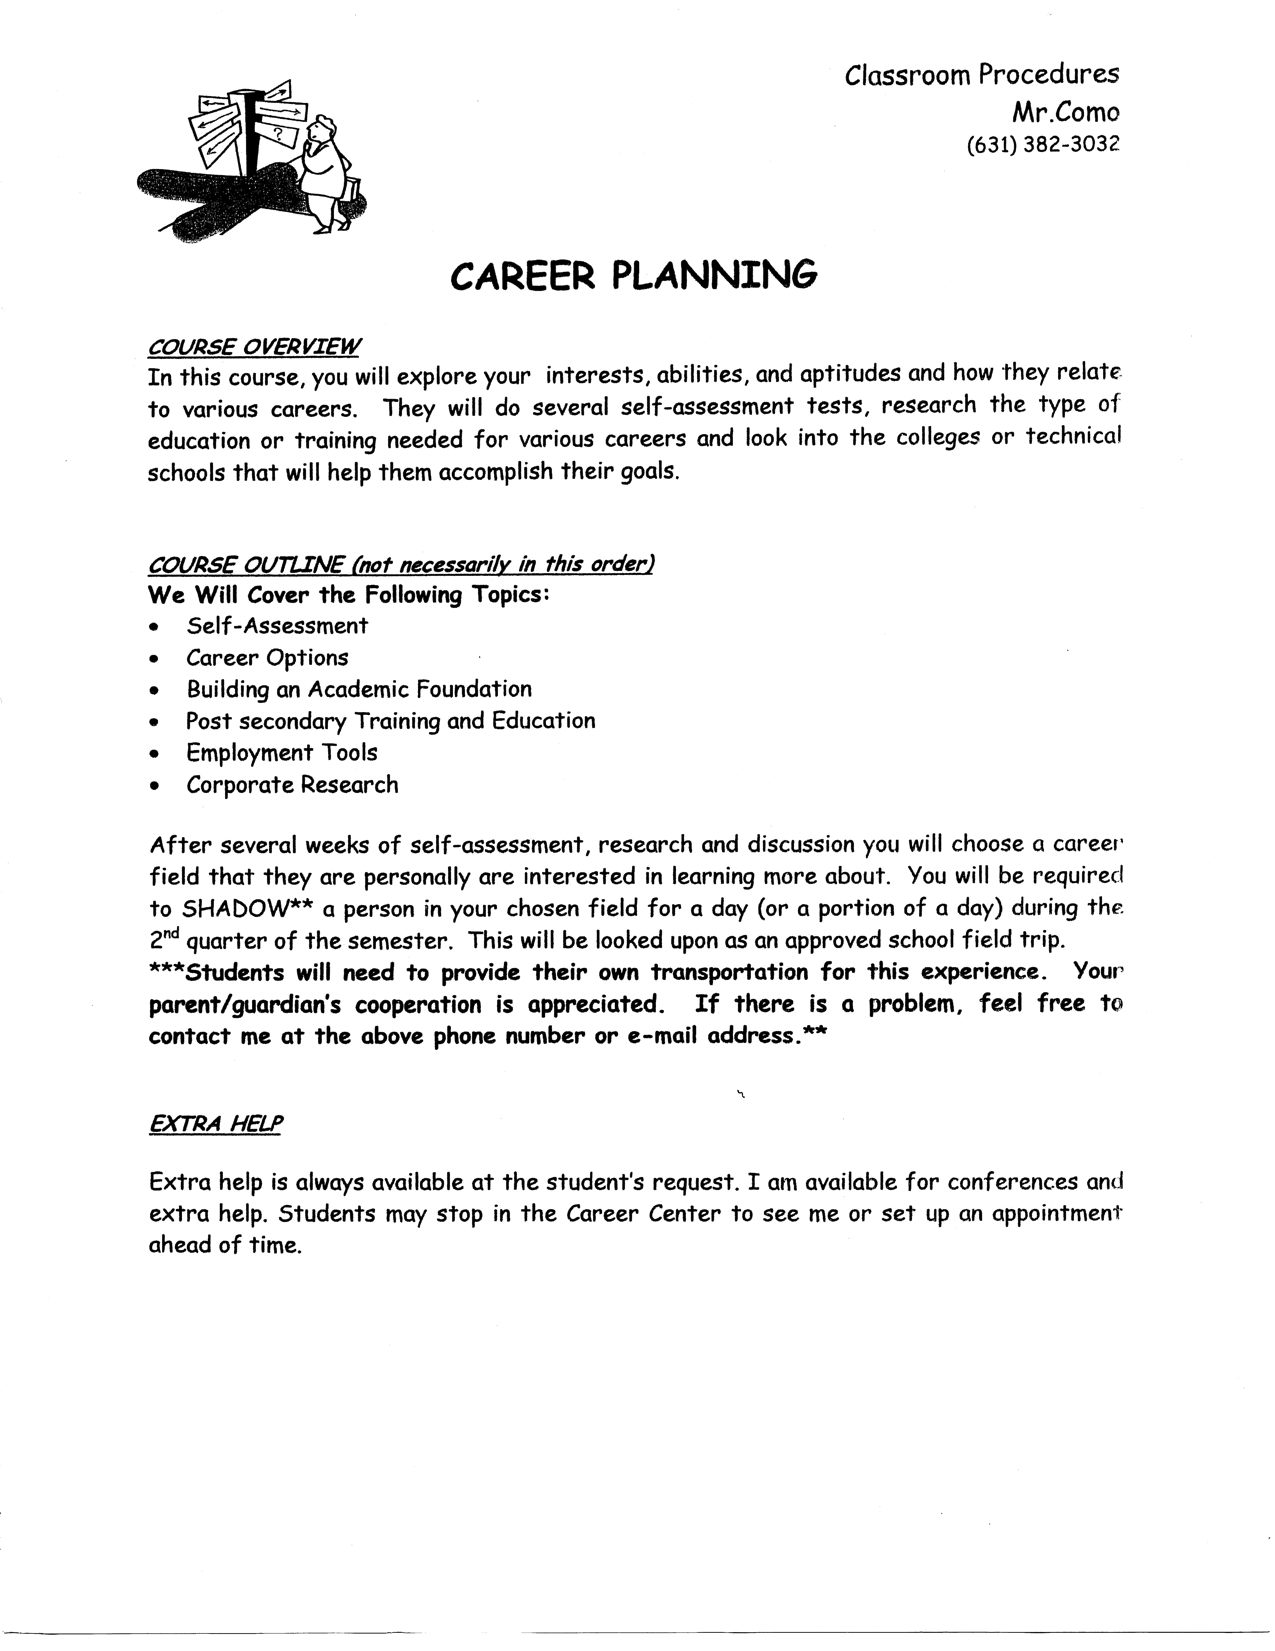 007 career development essay example plans template plan